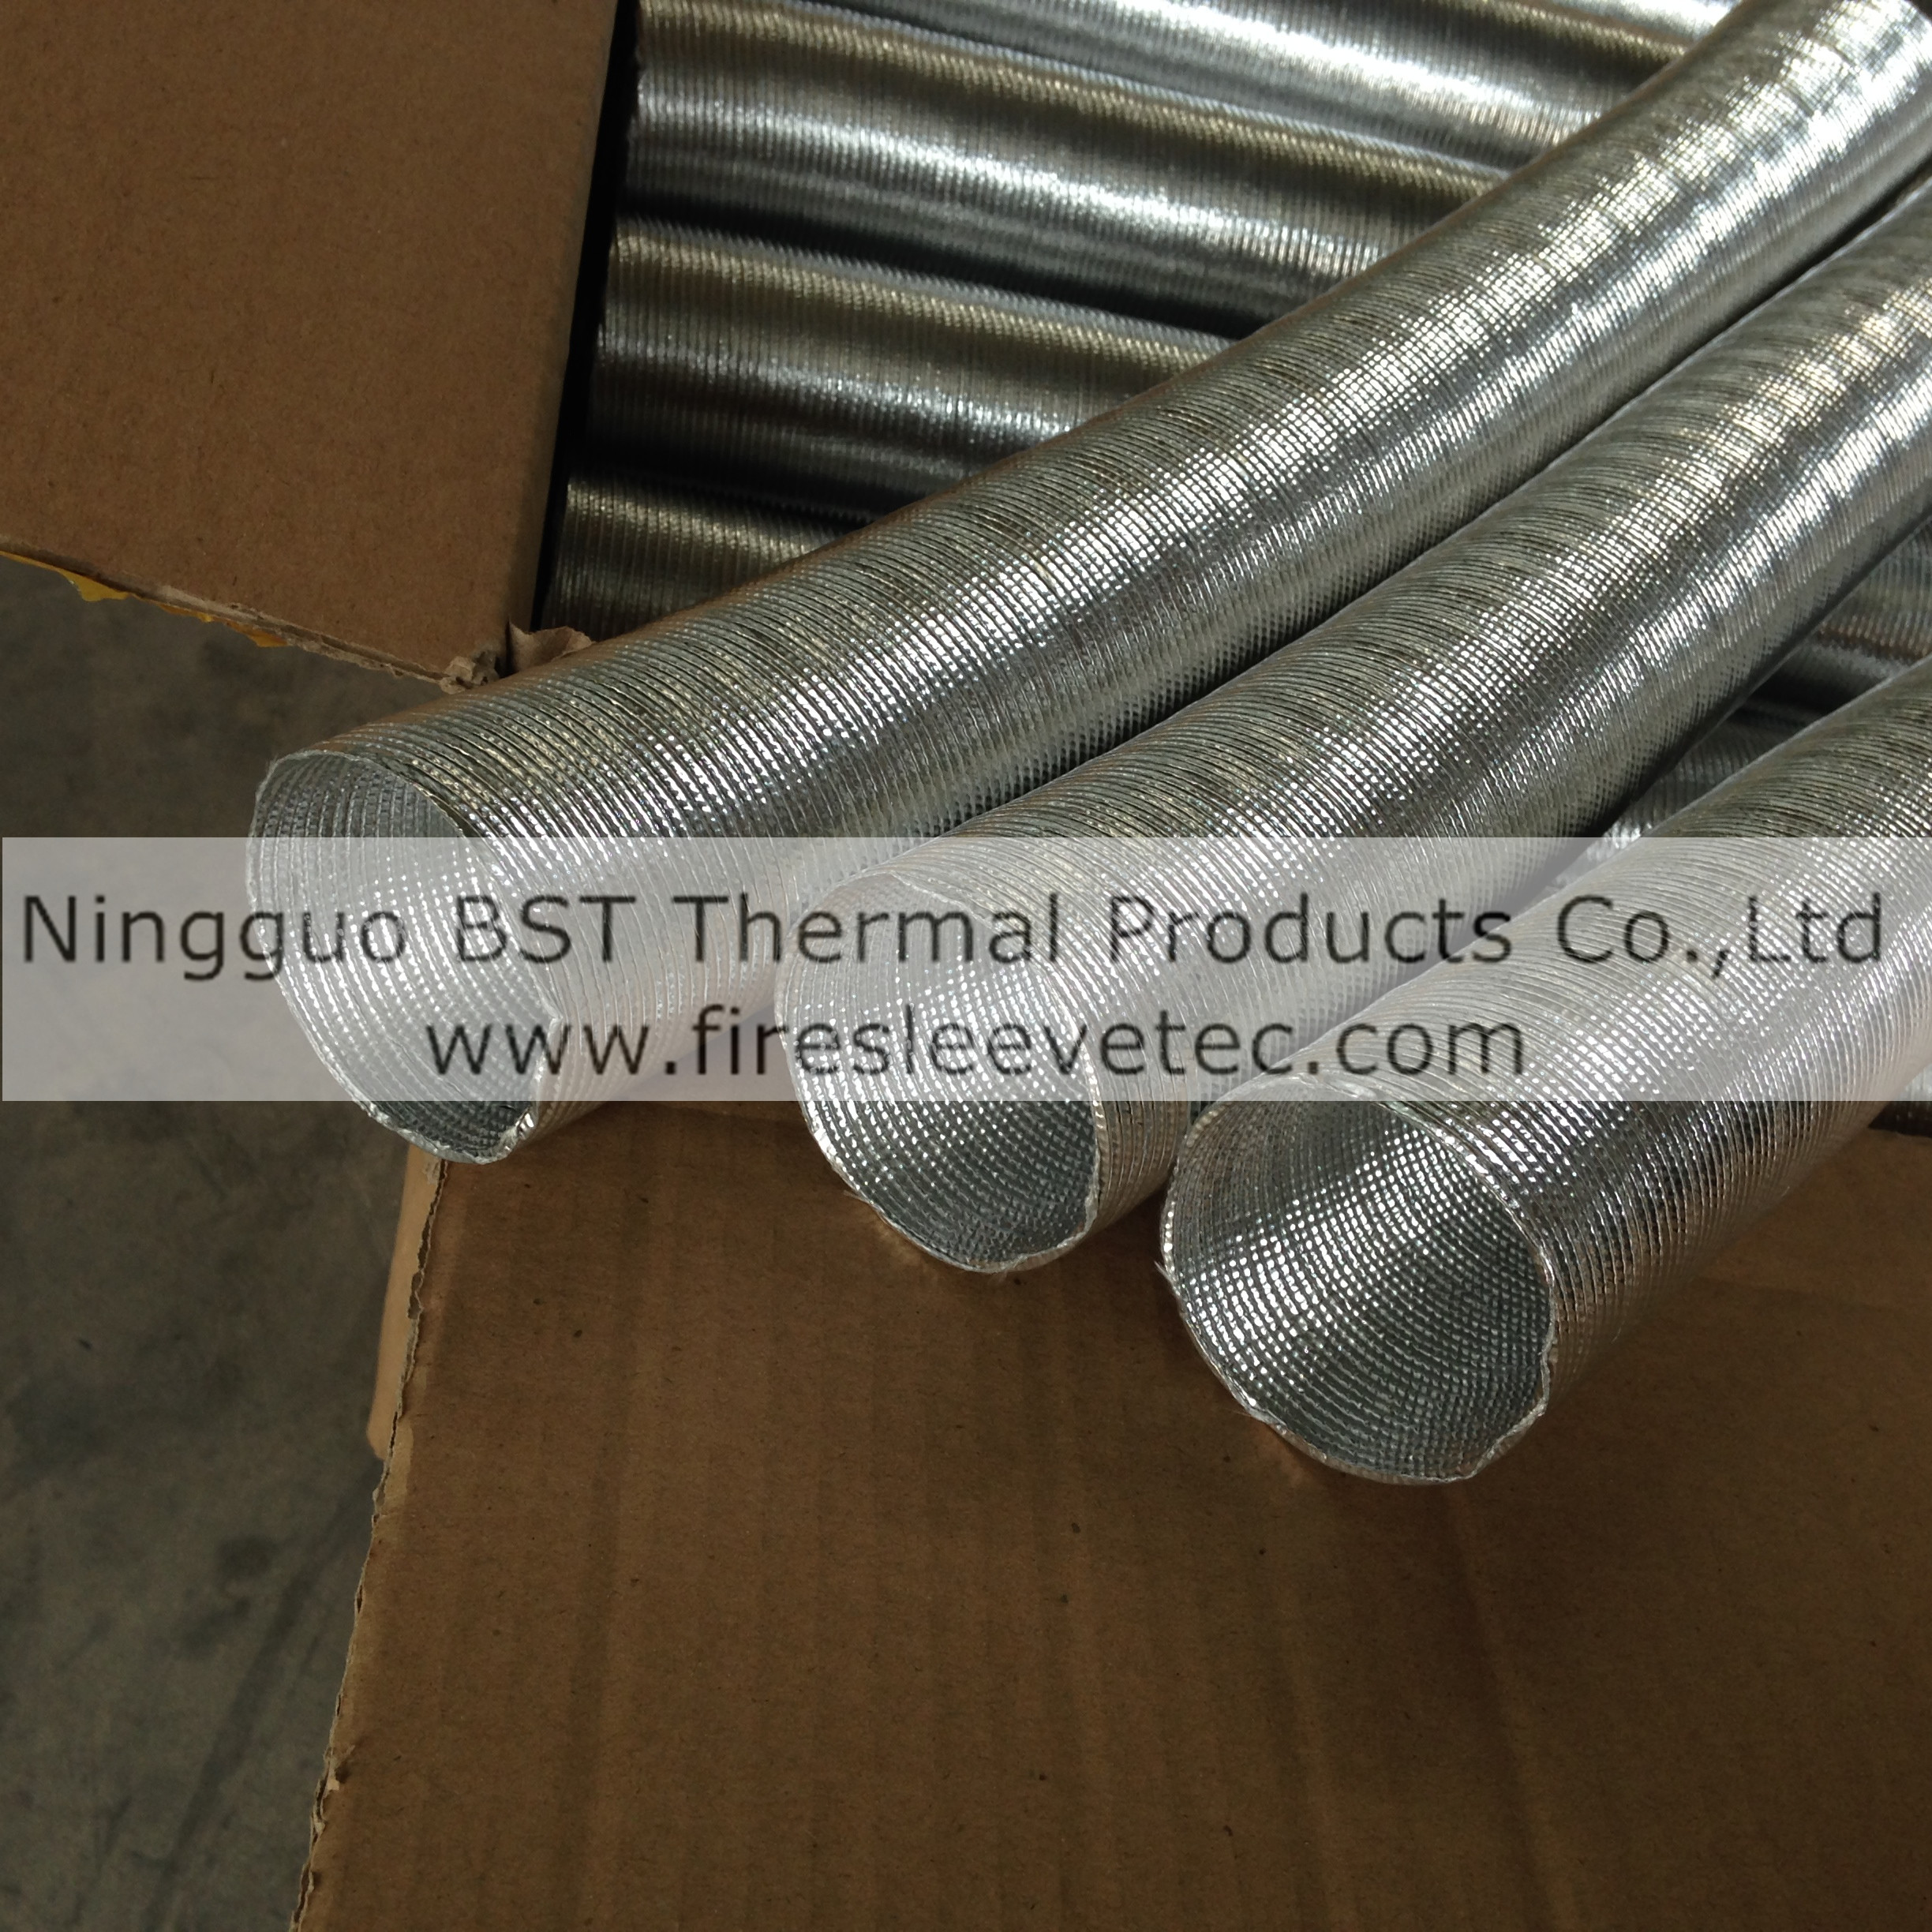 Heat Insulated Sleeves for Hoses